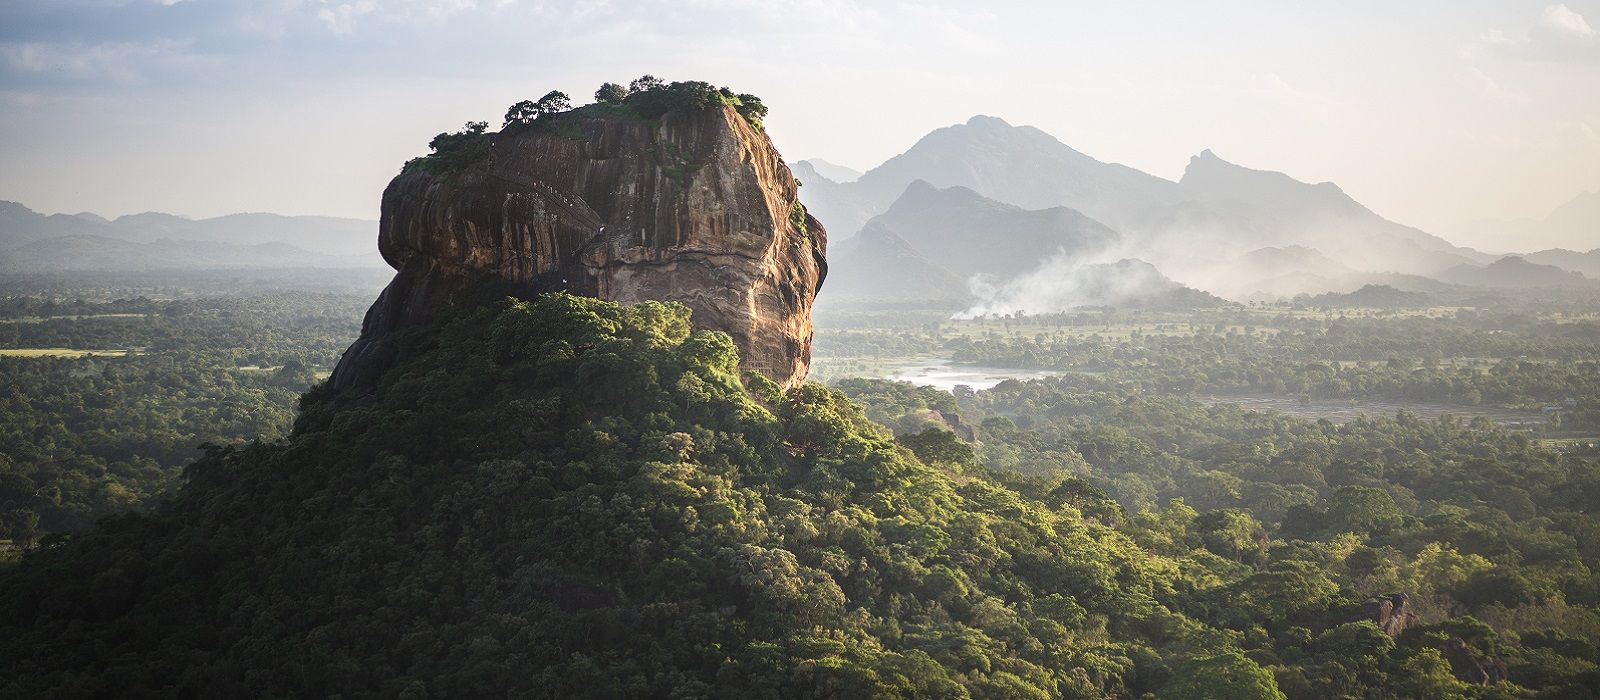 Sigiriya Lion Rock fortress and landscape in Sri Lanka. - Ideal for winter travel